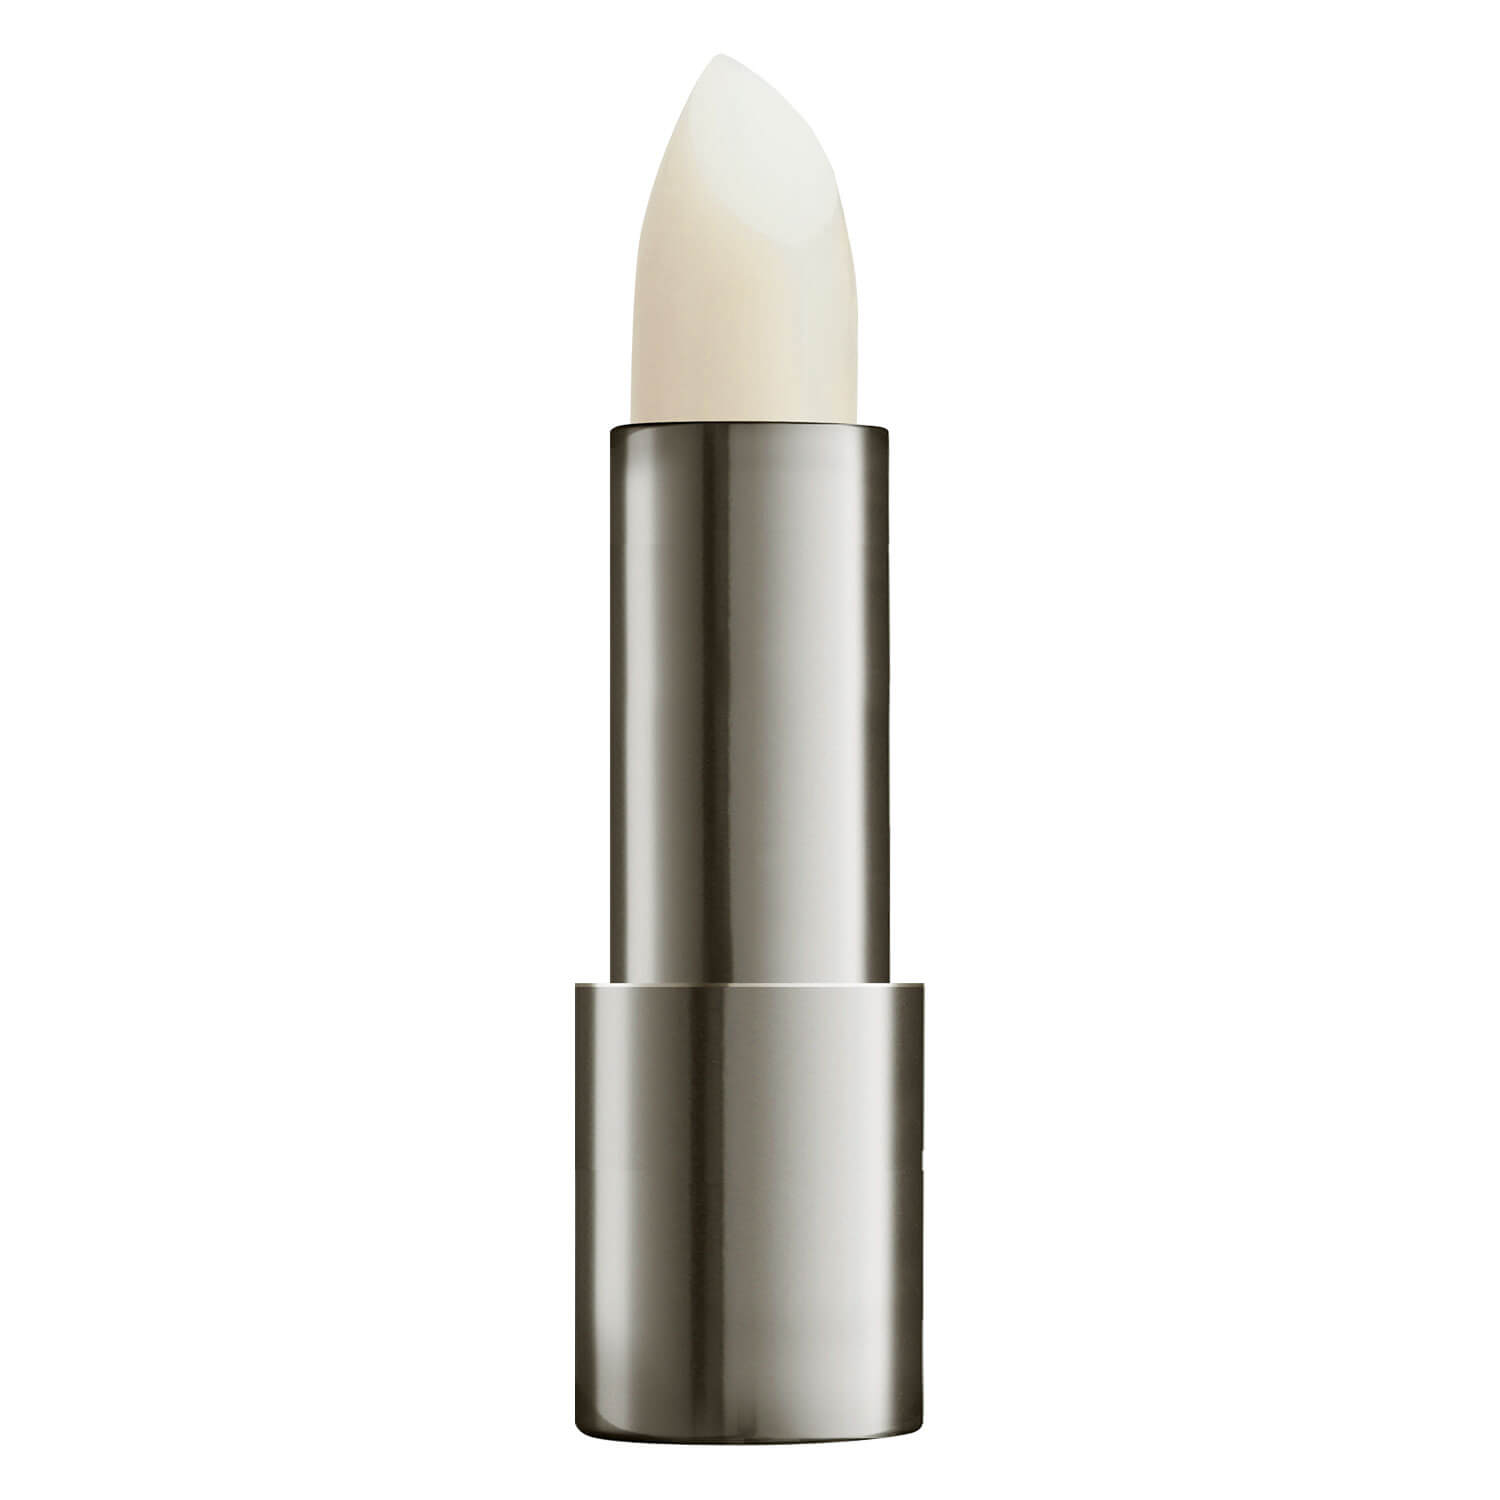 Reviderm Lips - Essential Lip Balm Natural 0NN - 3.5ml